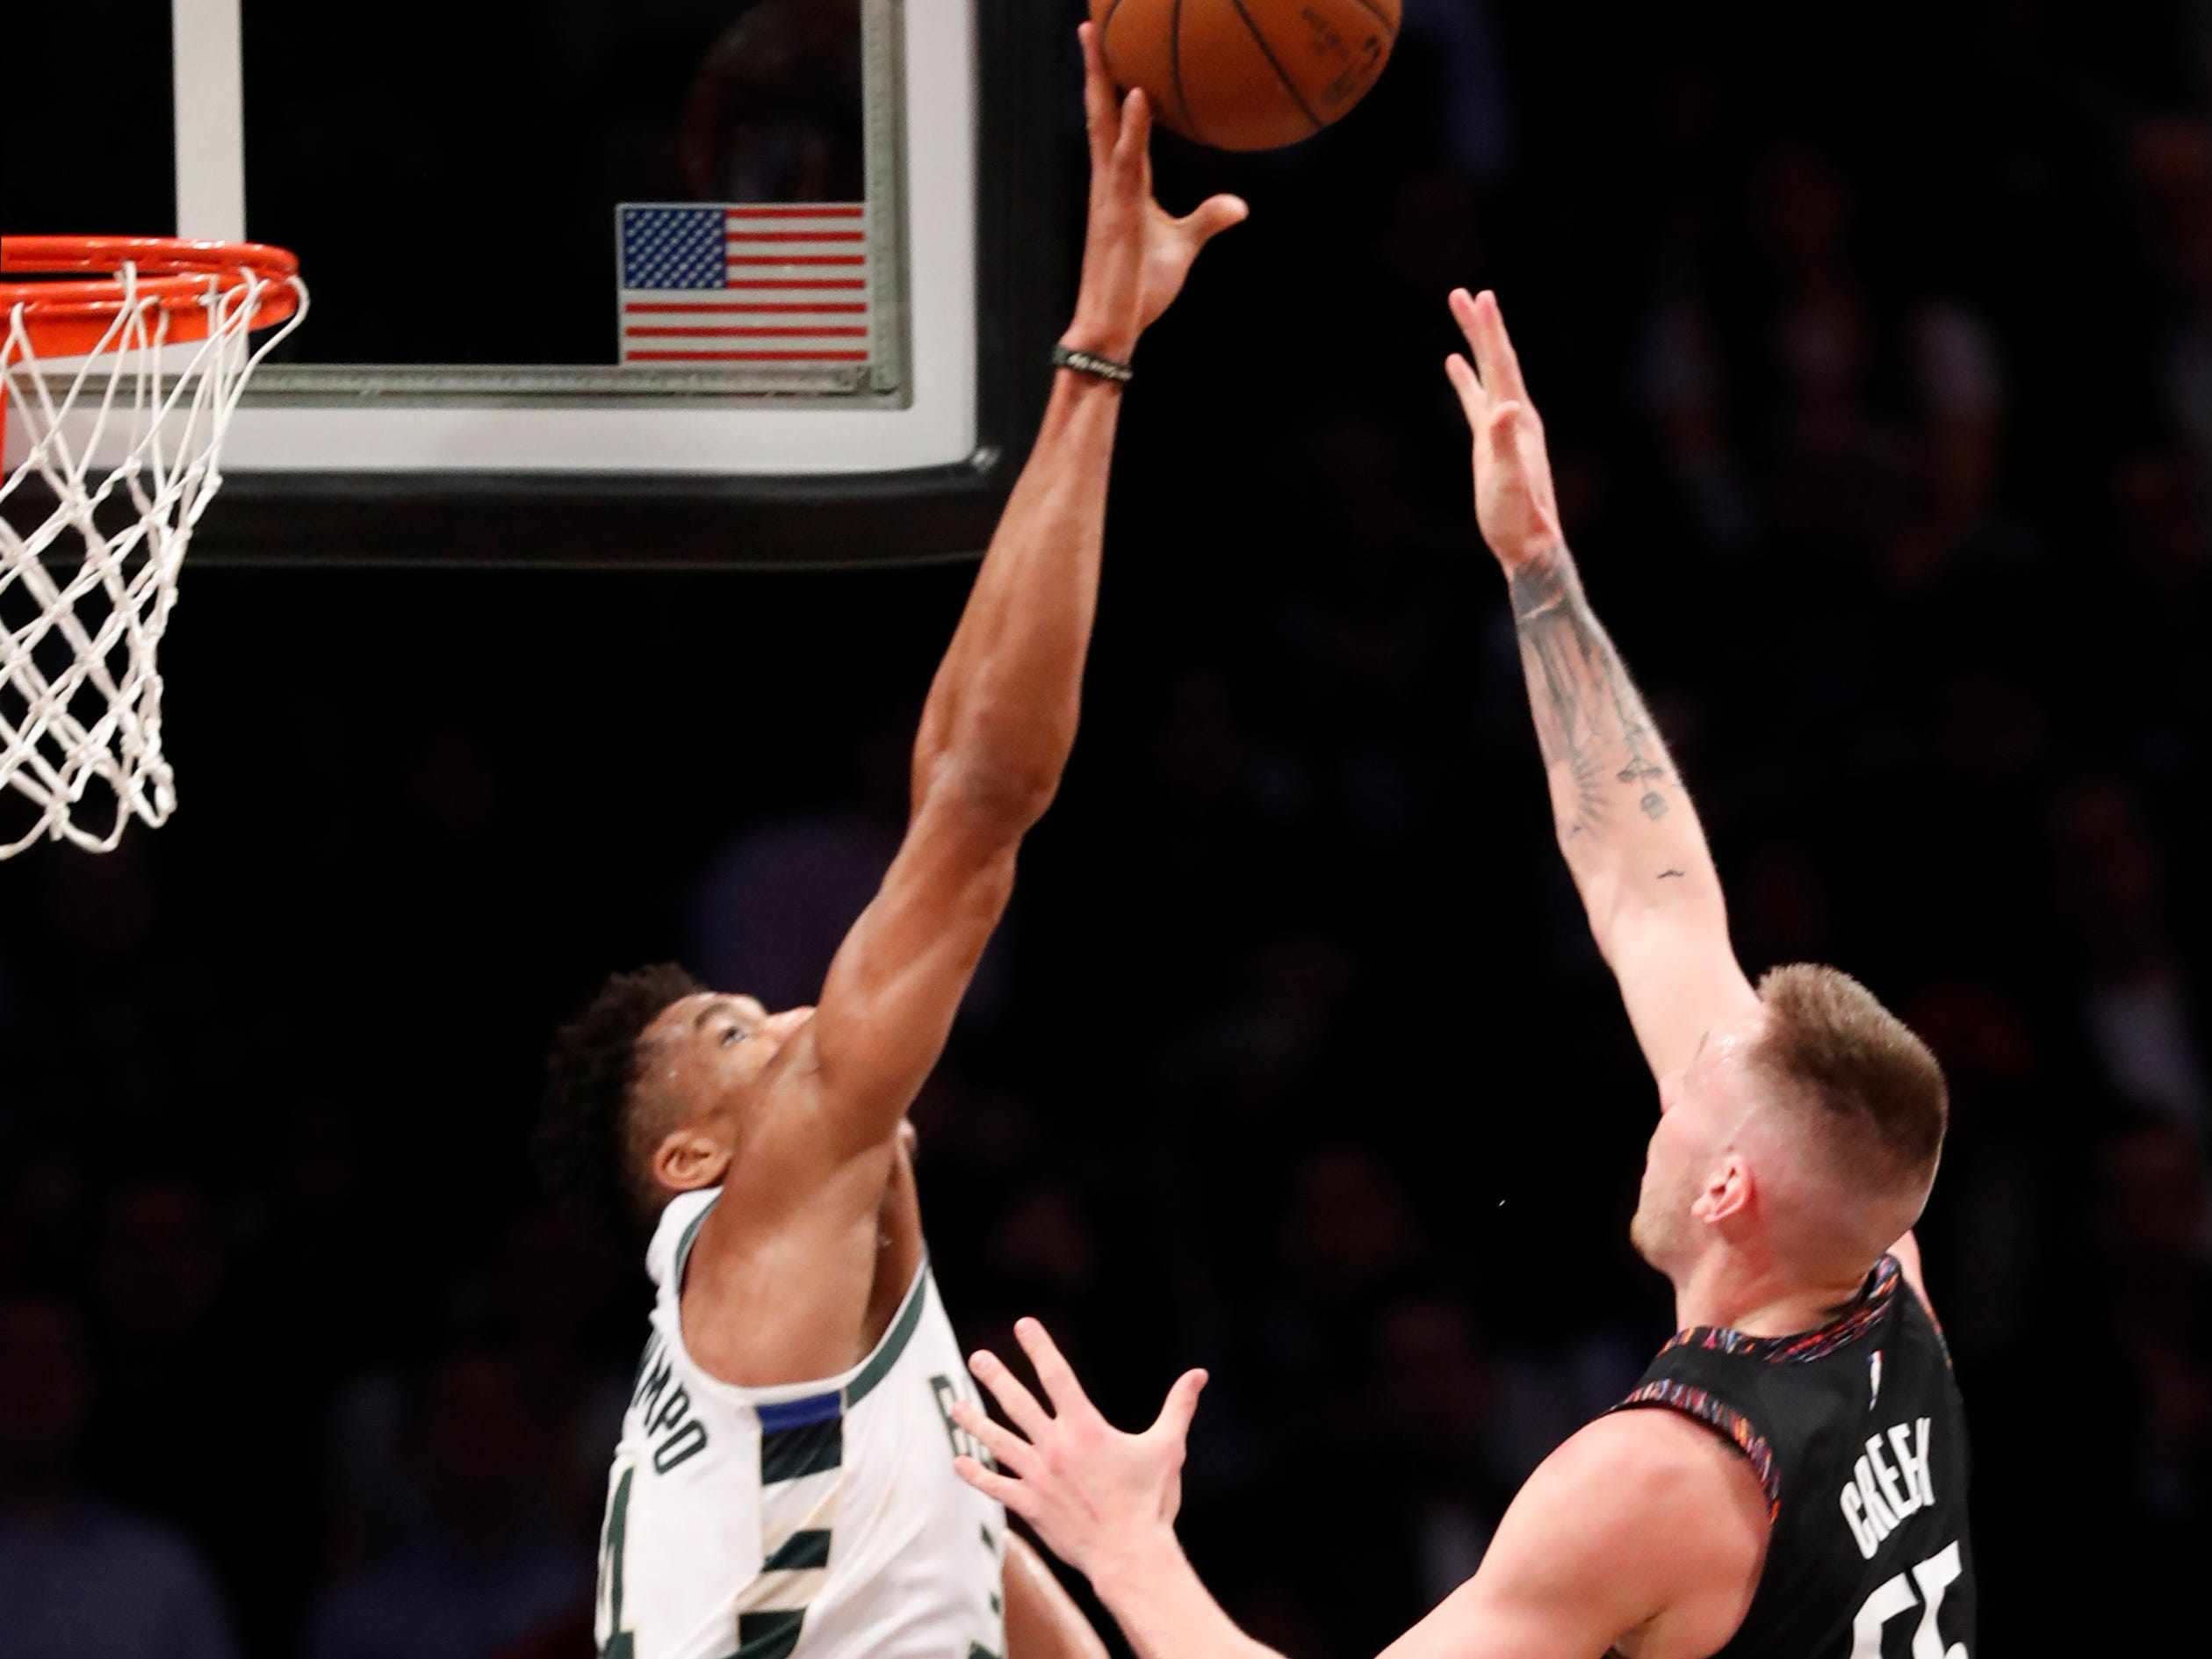 Bucks forward Giannis Antetokounmpo rejects the shot of Nets forward Mitchell Creek during the fourth quarter Monday night.